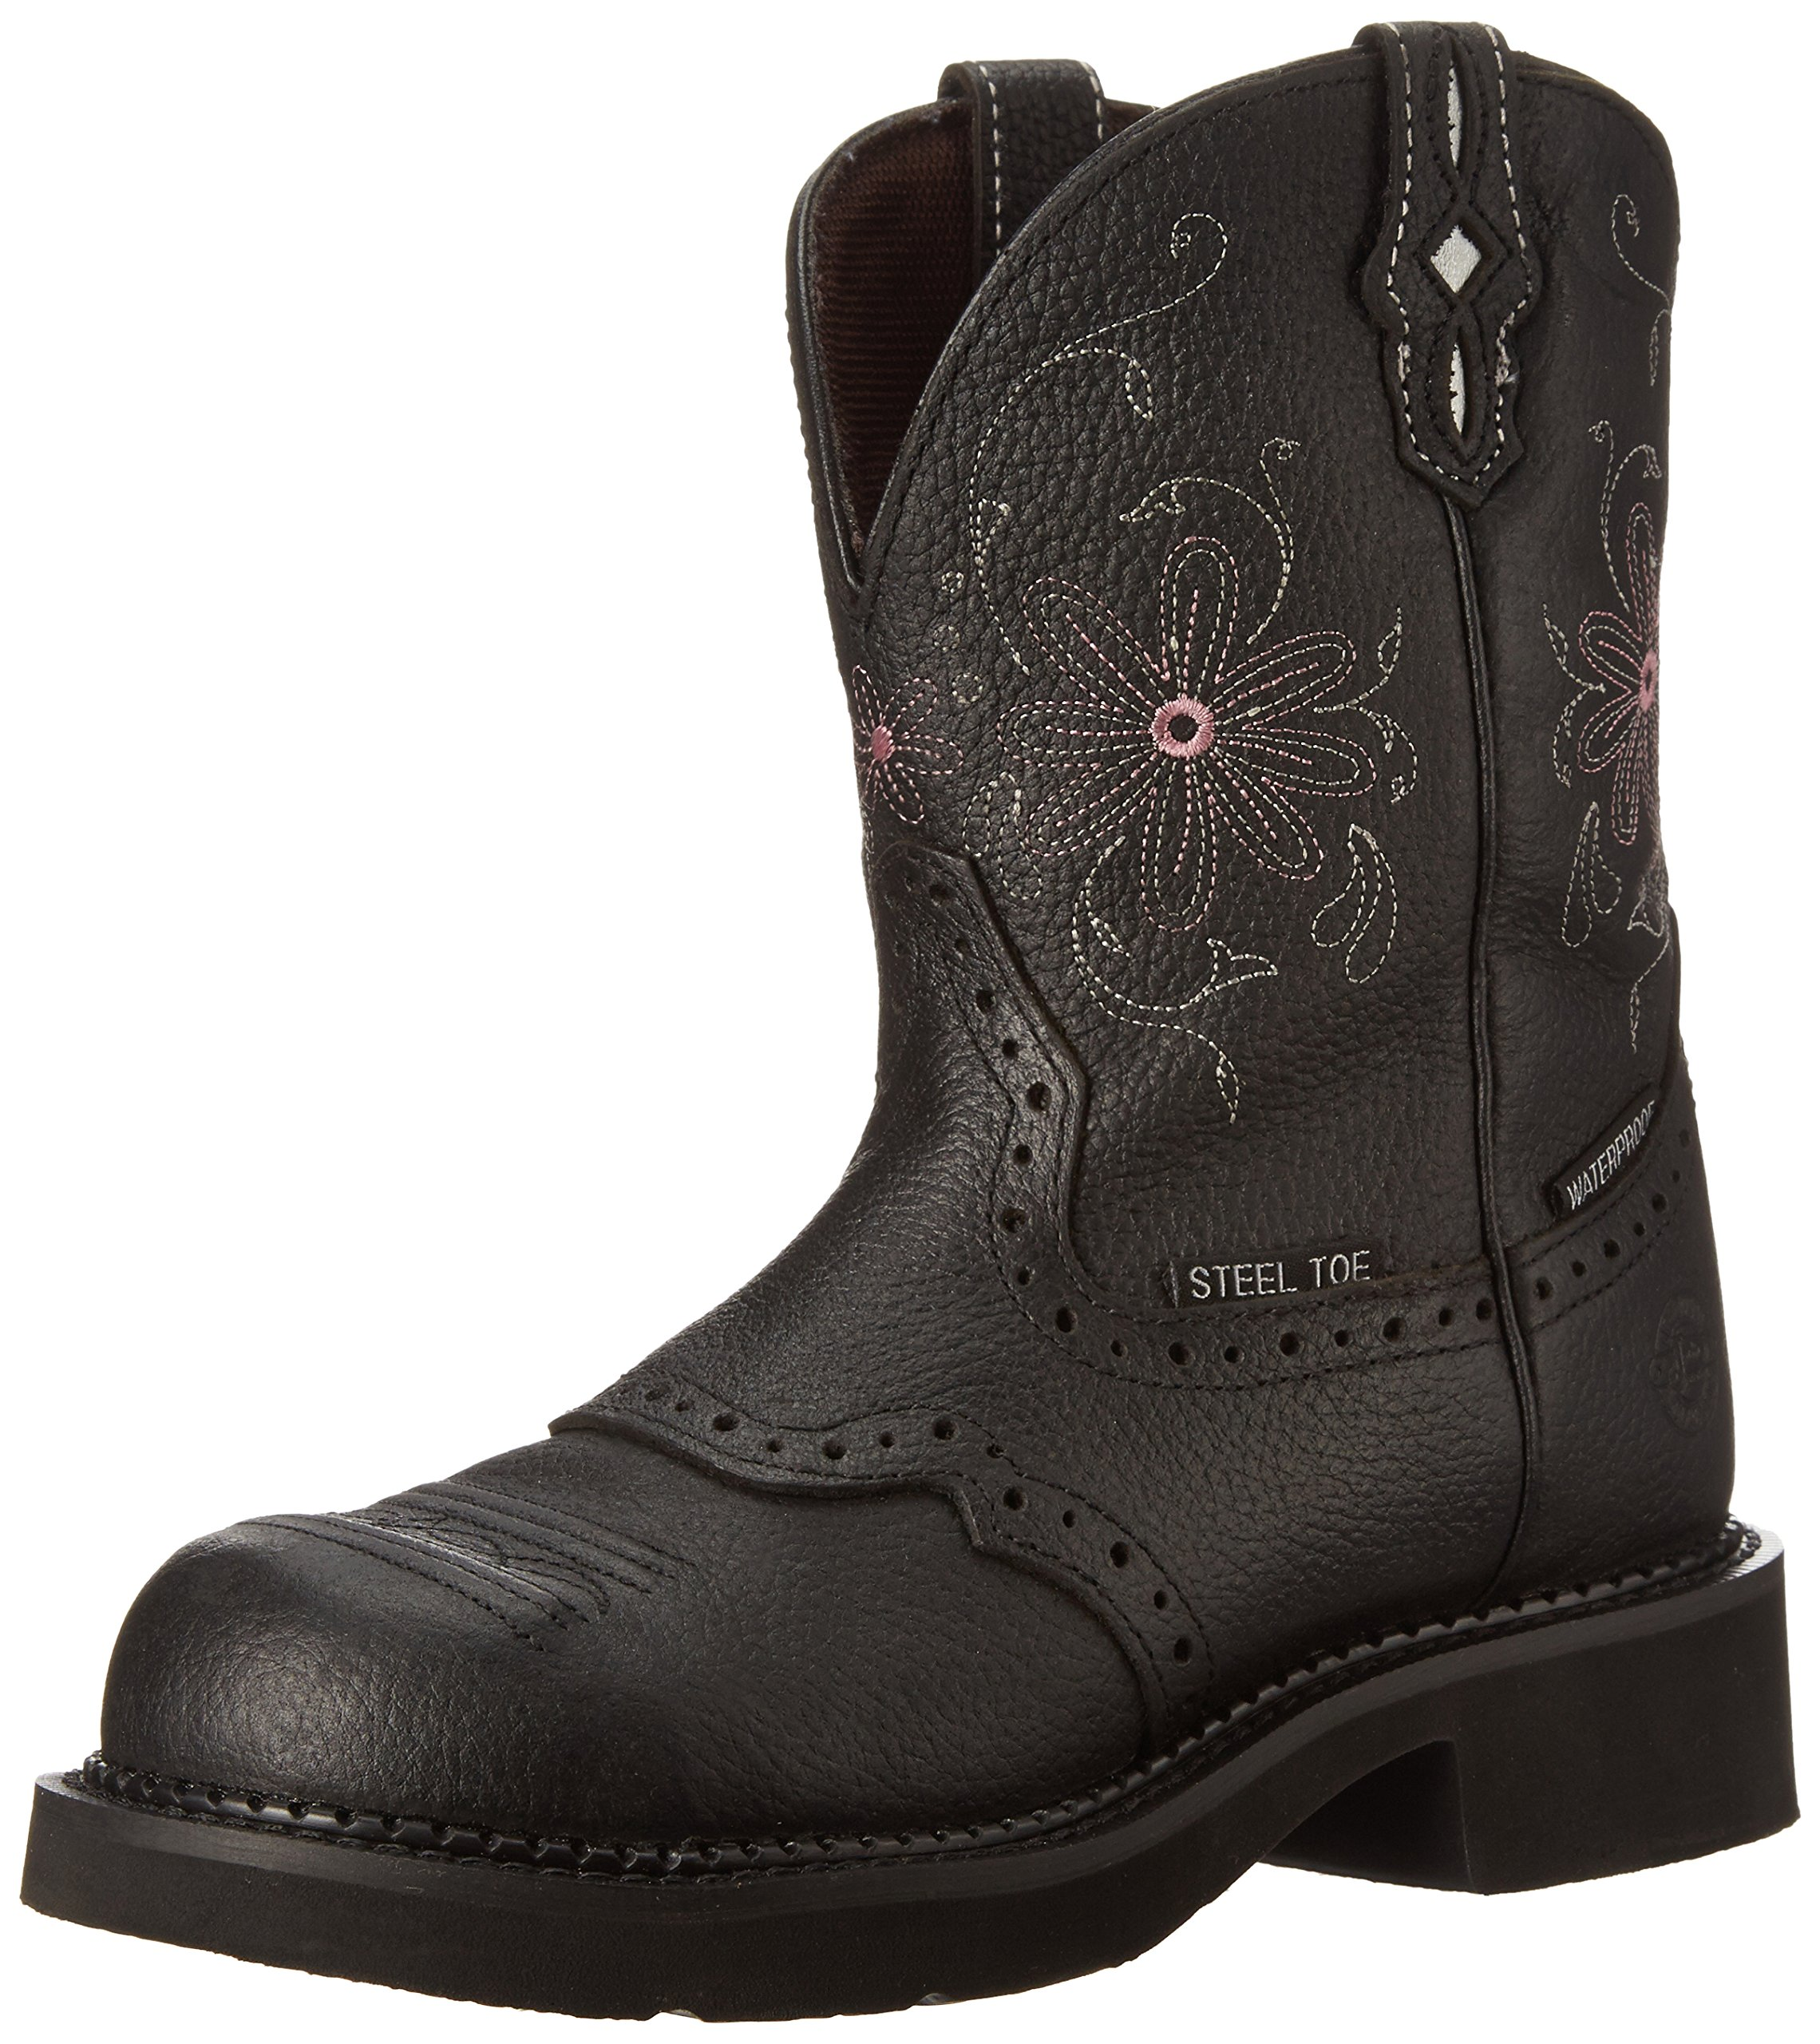 Justin Boots Women's Gypsy Collection 8'' Steel Toe,Black Pebbled Grain,6.5B